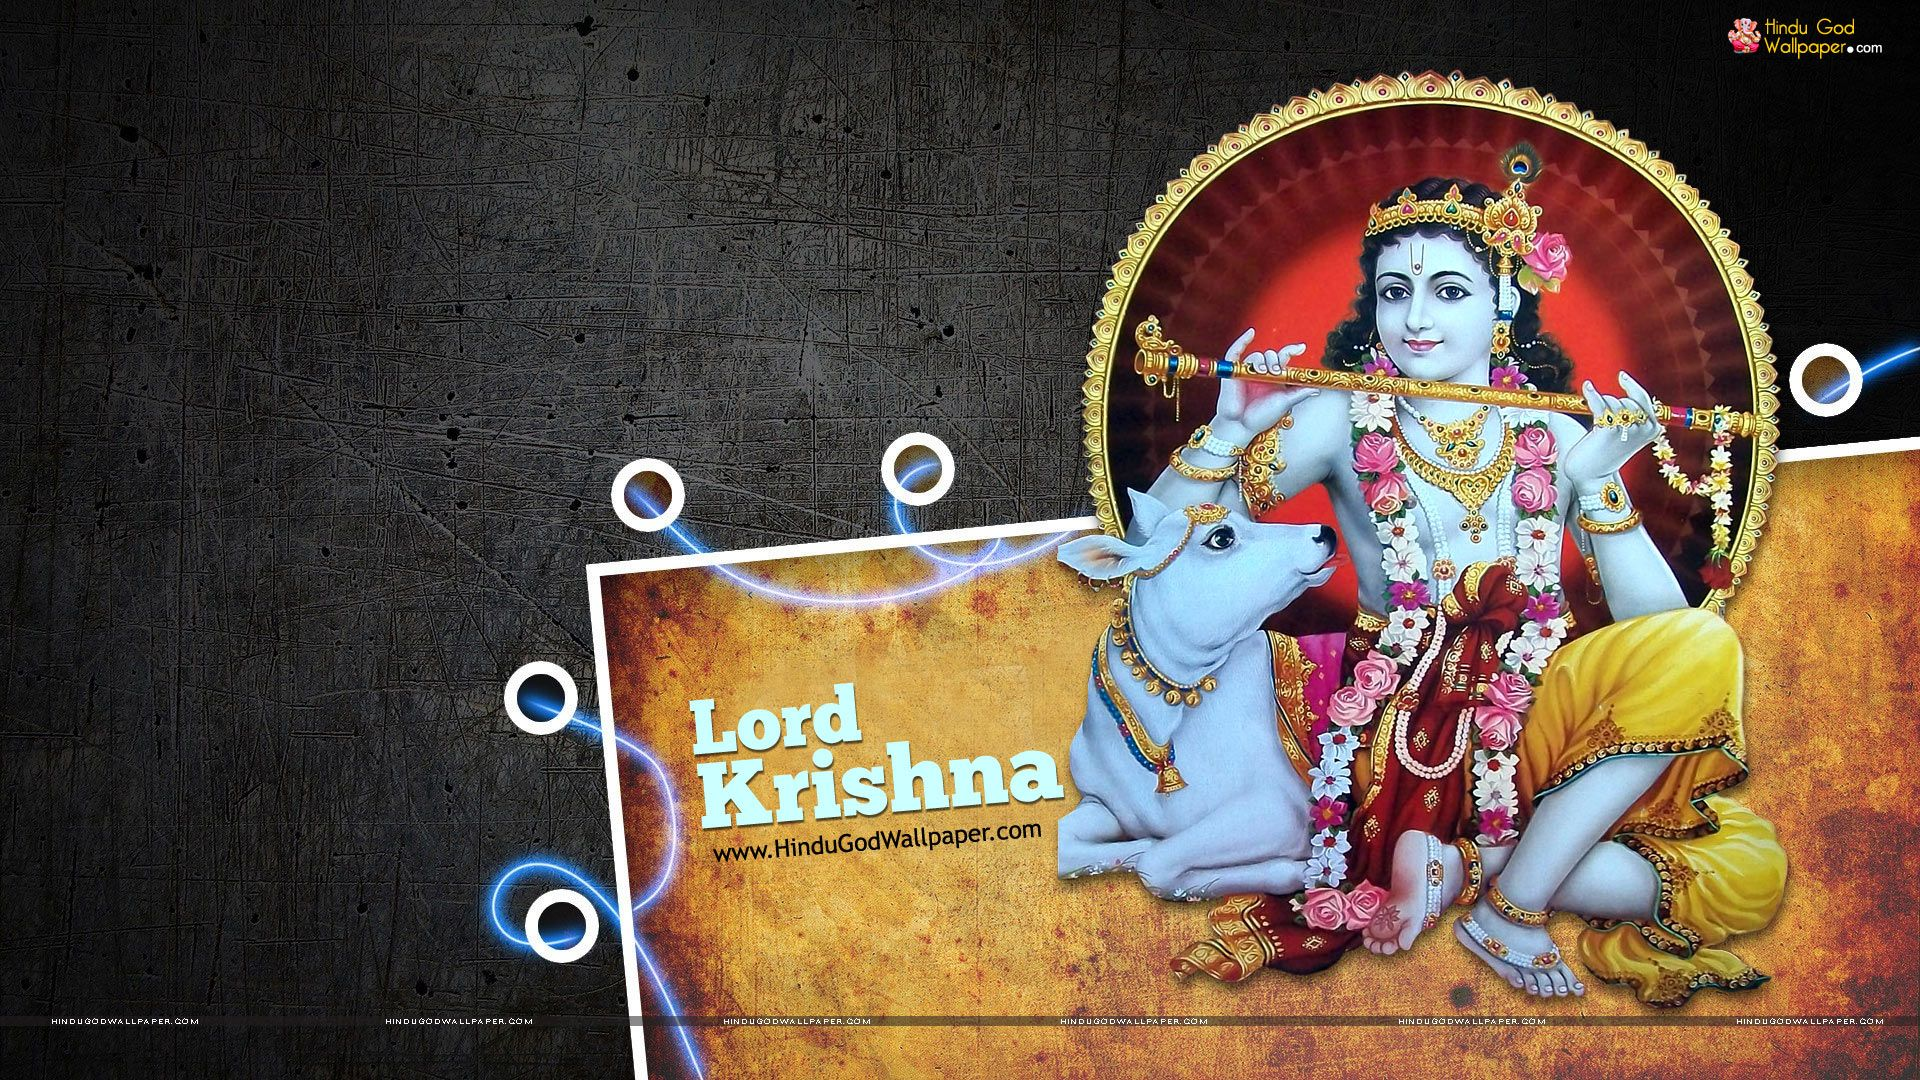 Lord Krishna Wallpaper 1080p Hd Full Size Download Lord Krishna